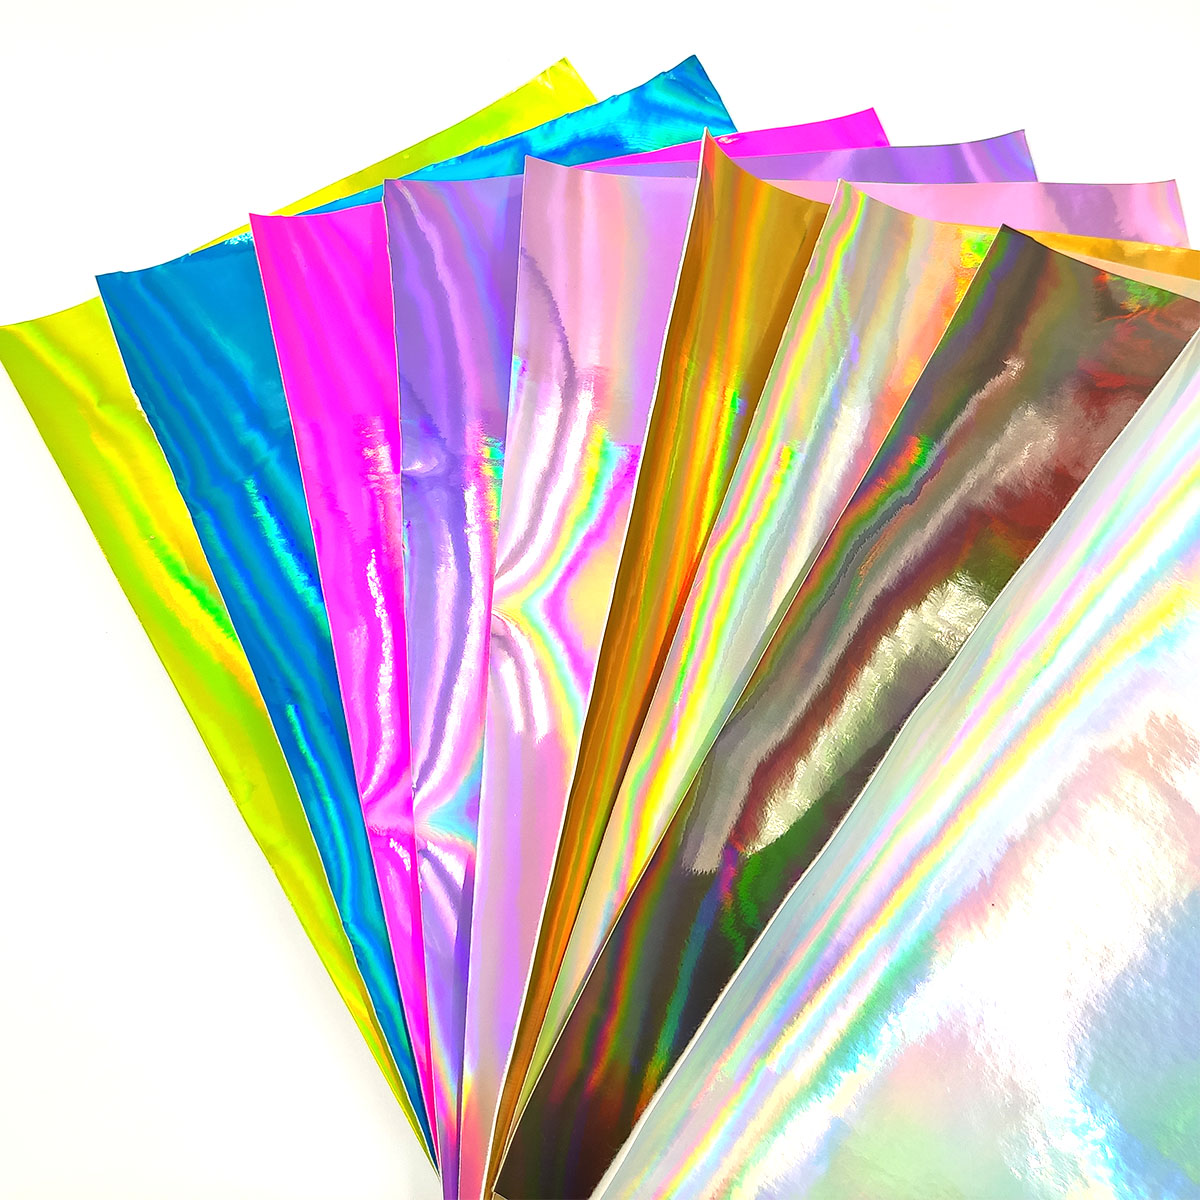 Holographic Faux Leather Fabric Sheets Craft Leather for DIY Hair Bows Headband Earrings A4 Size 6 Colors